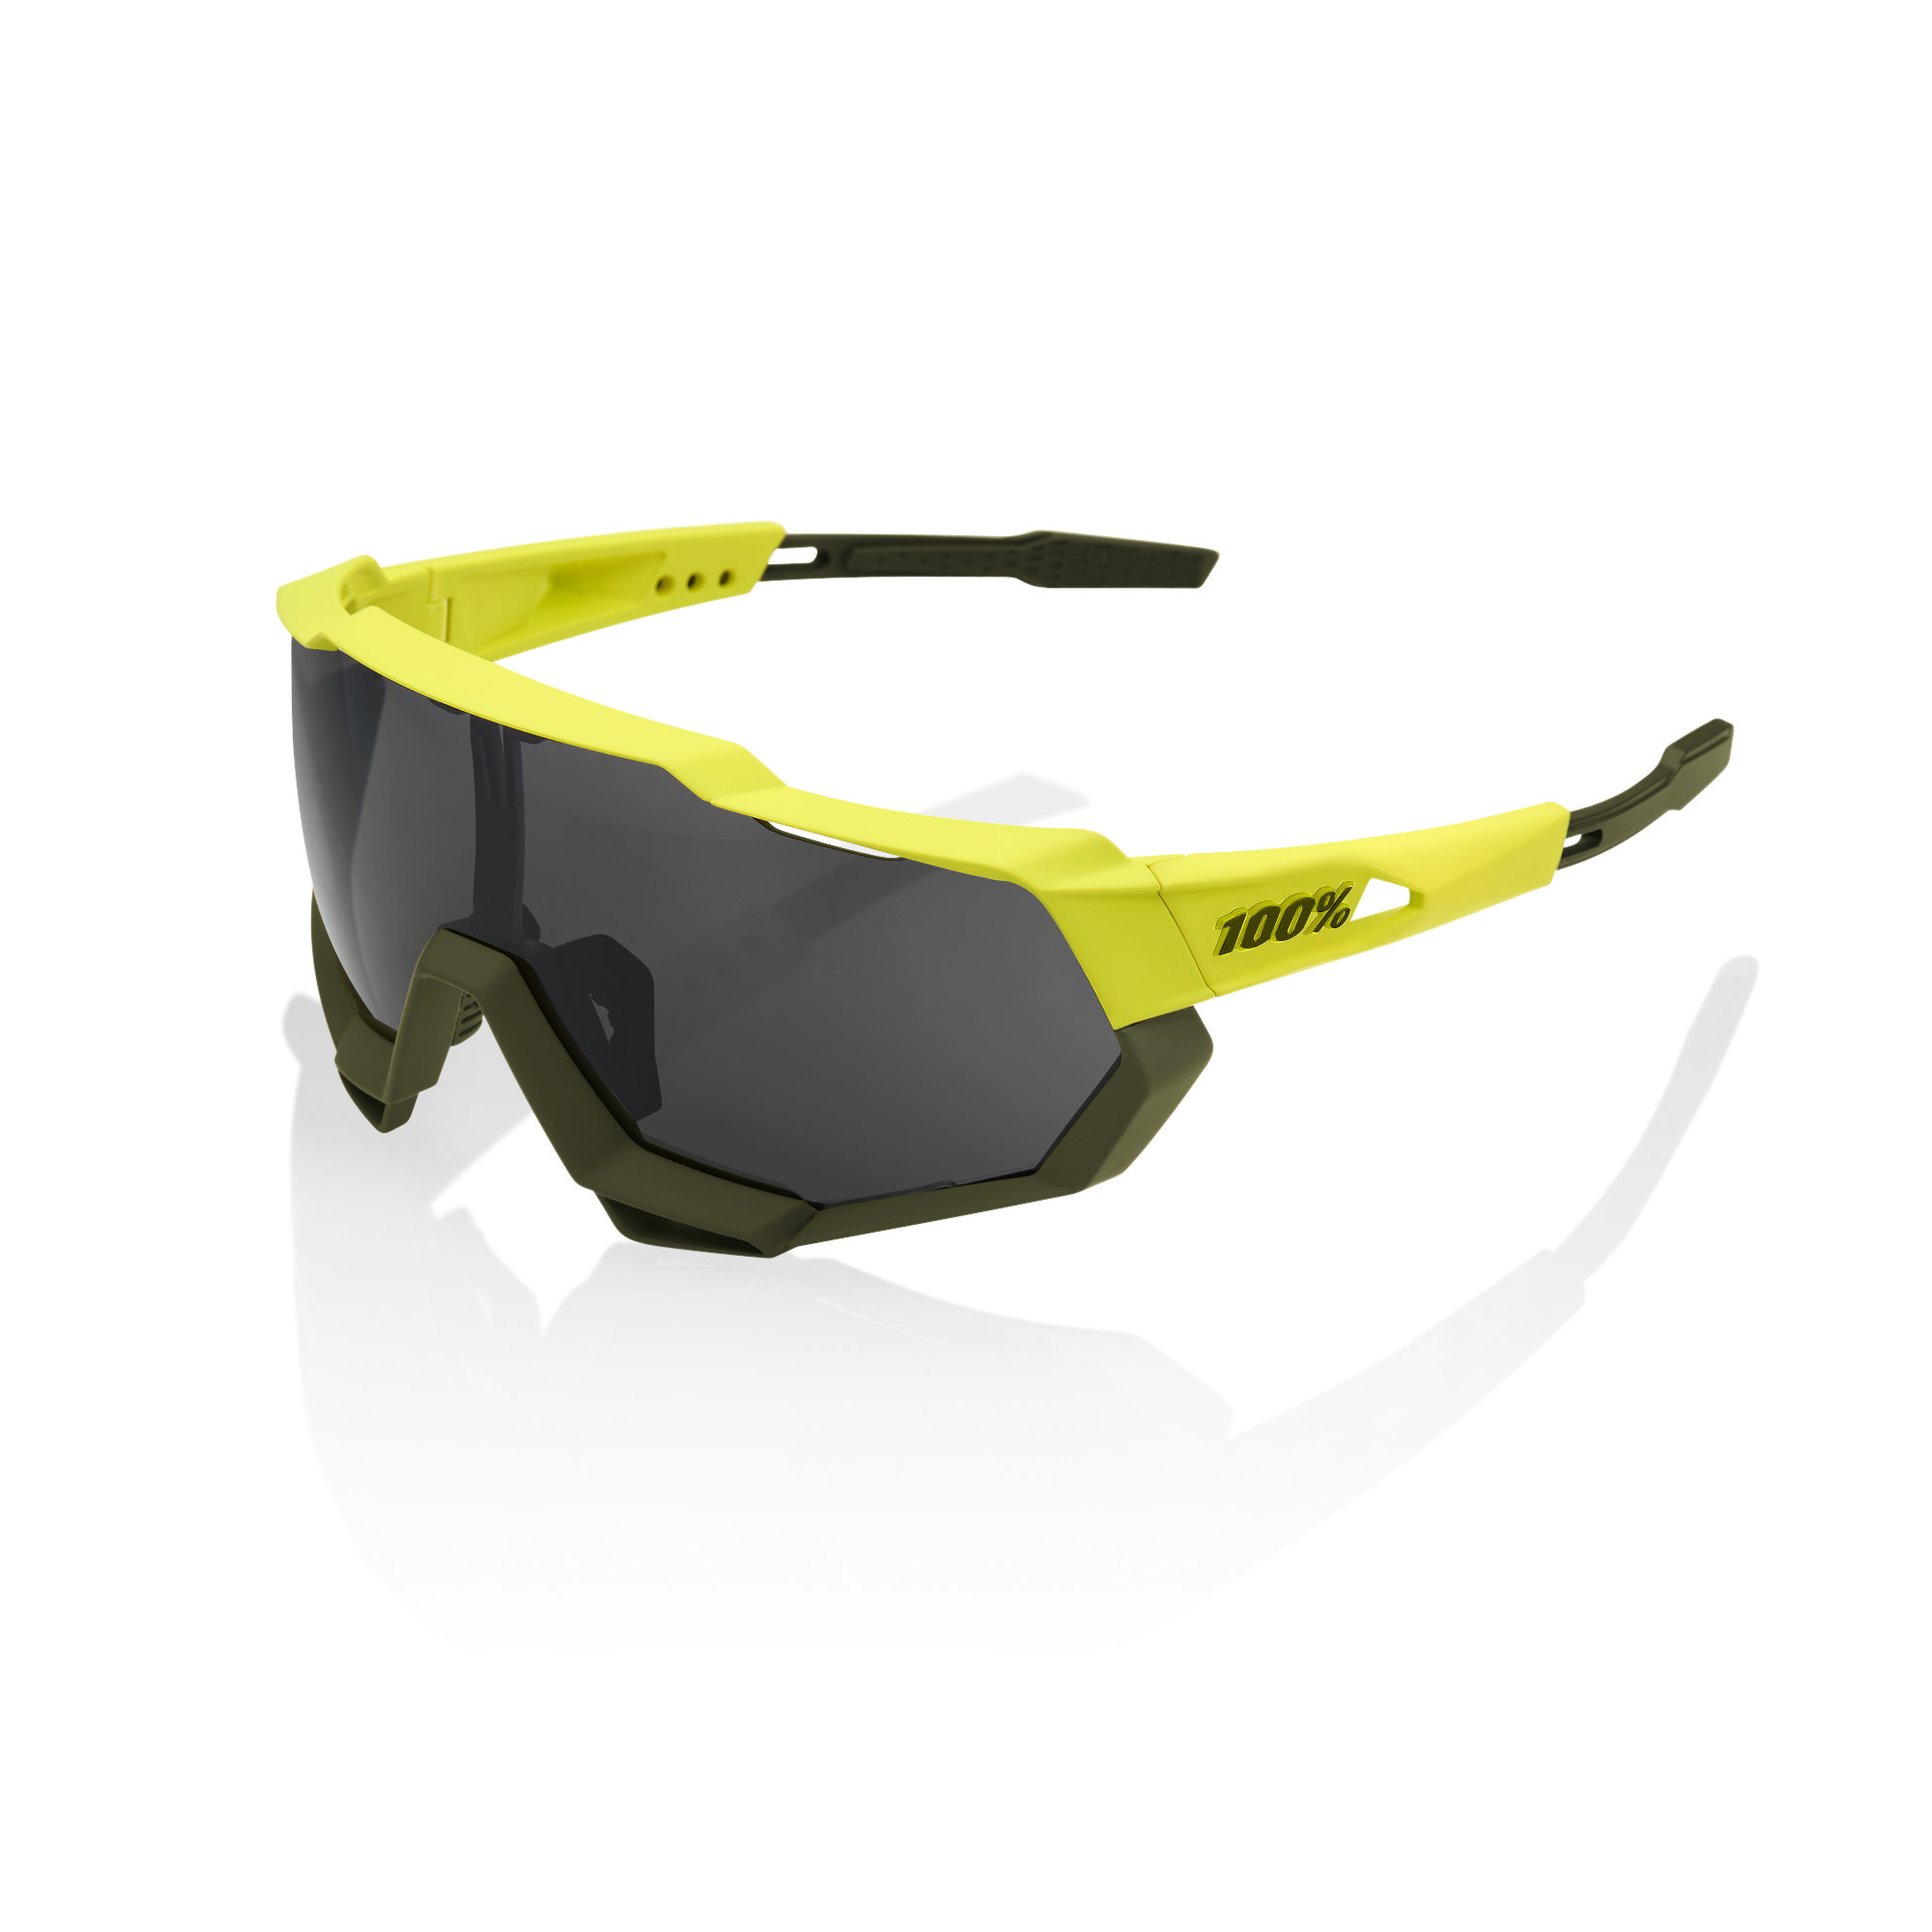 Speedtrap Soft Tact Banana Black Mirror Lens-1